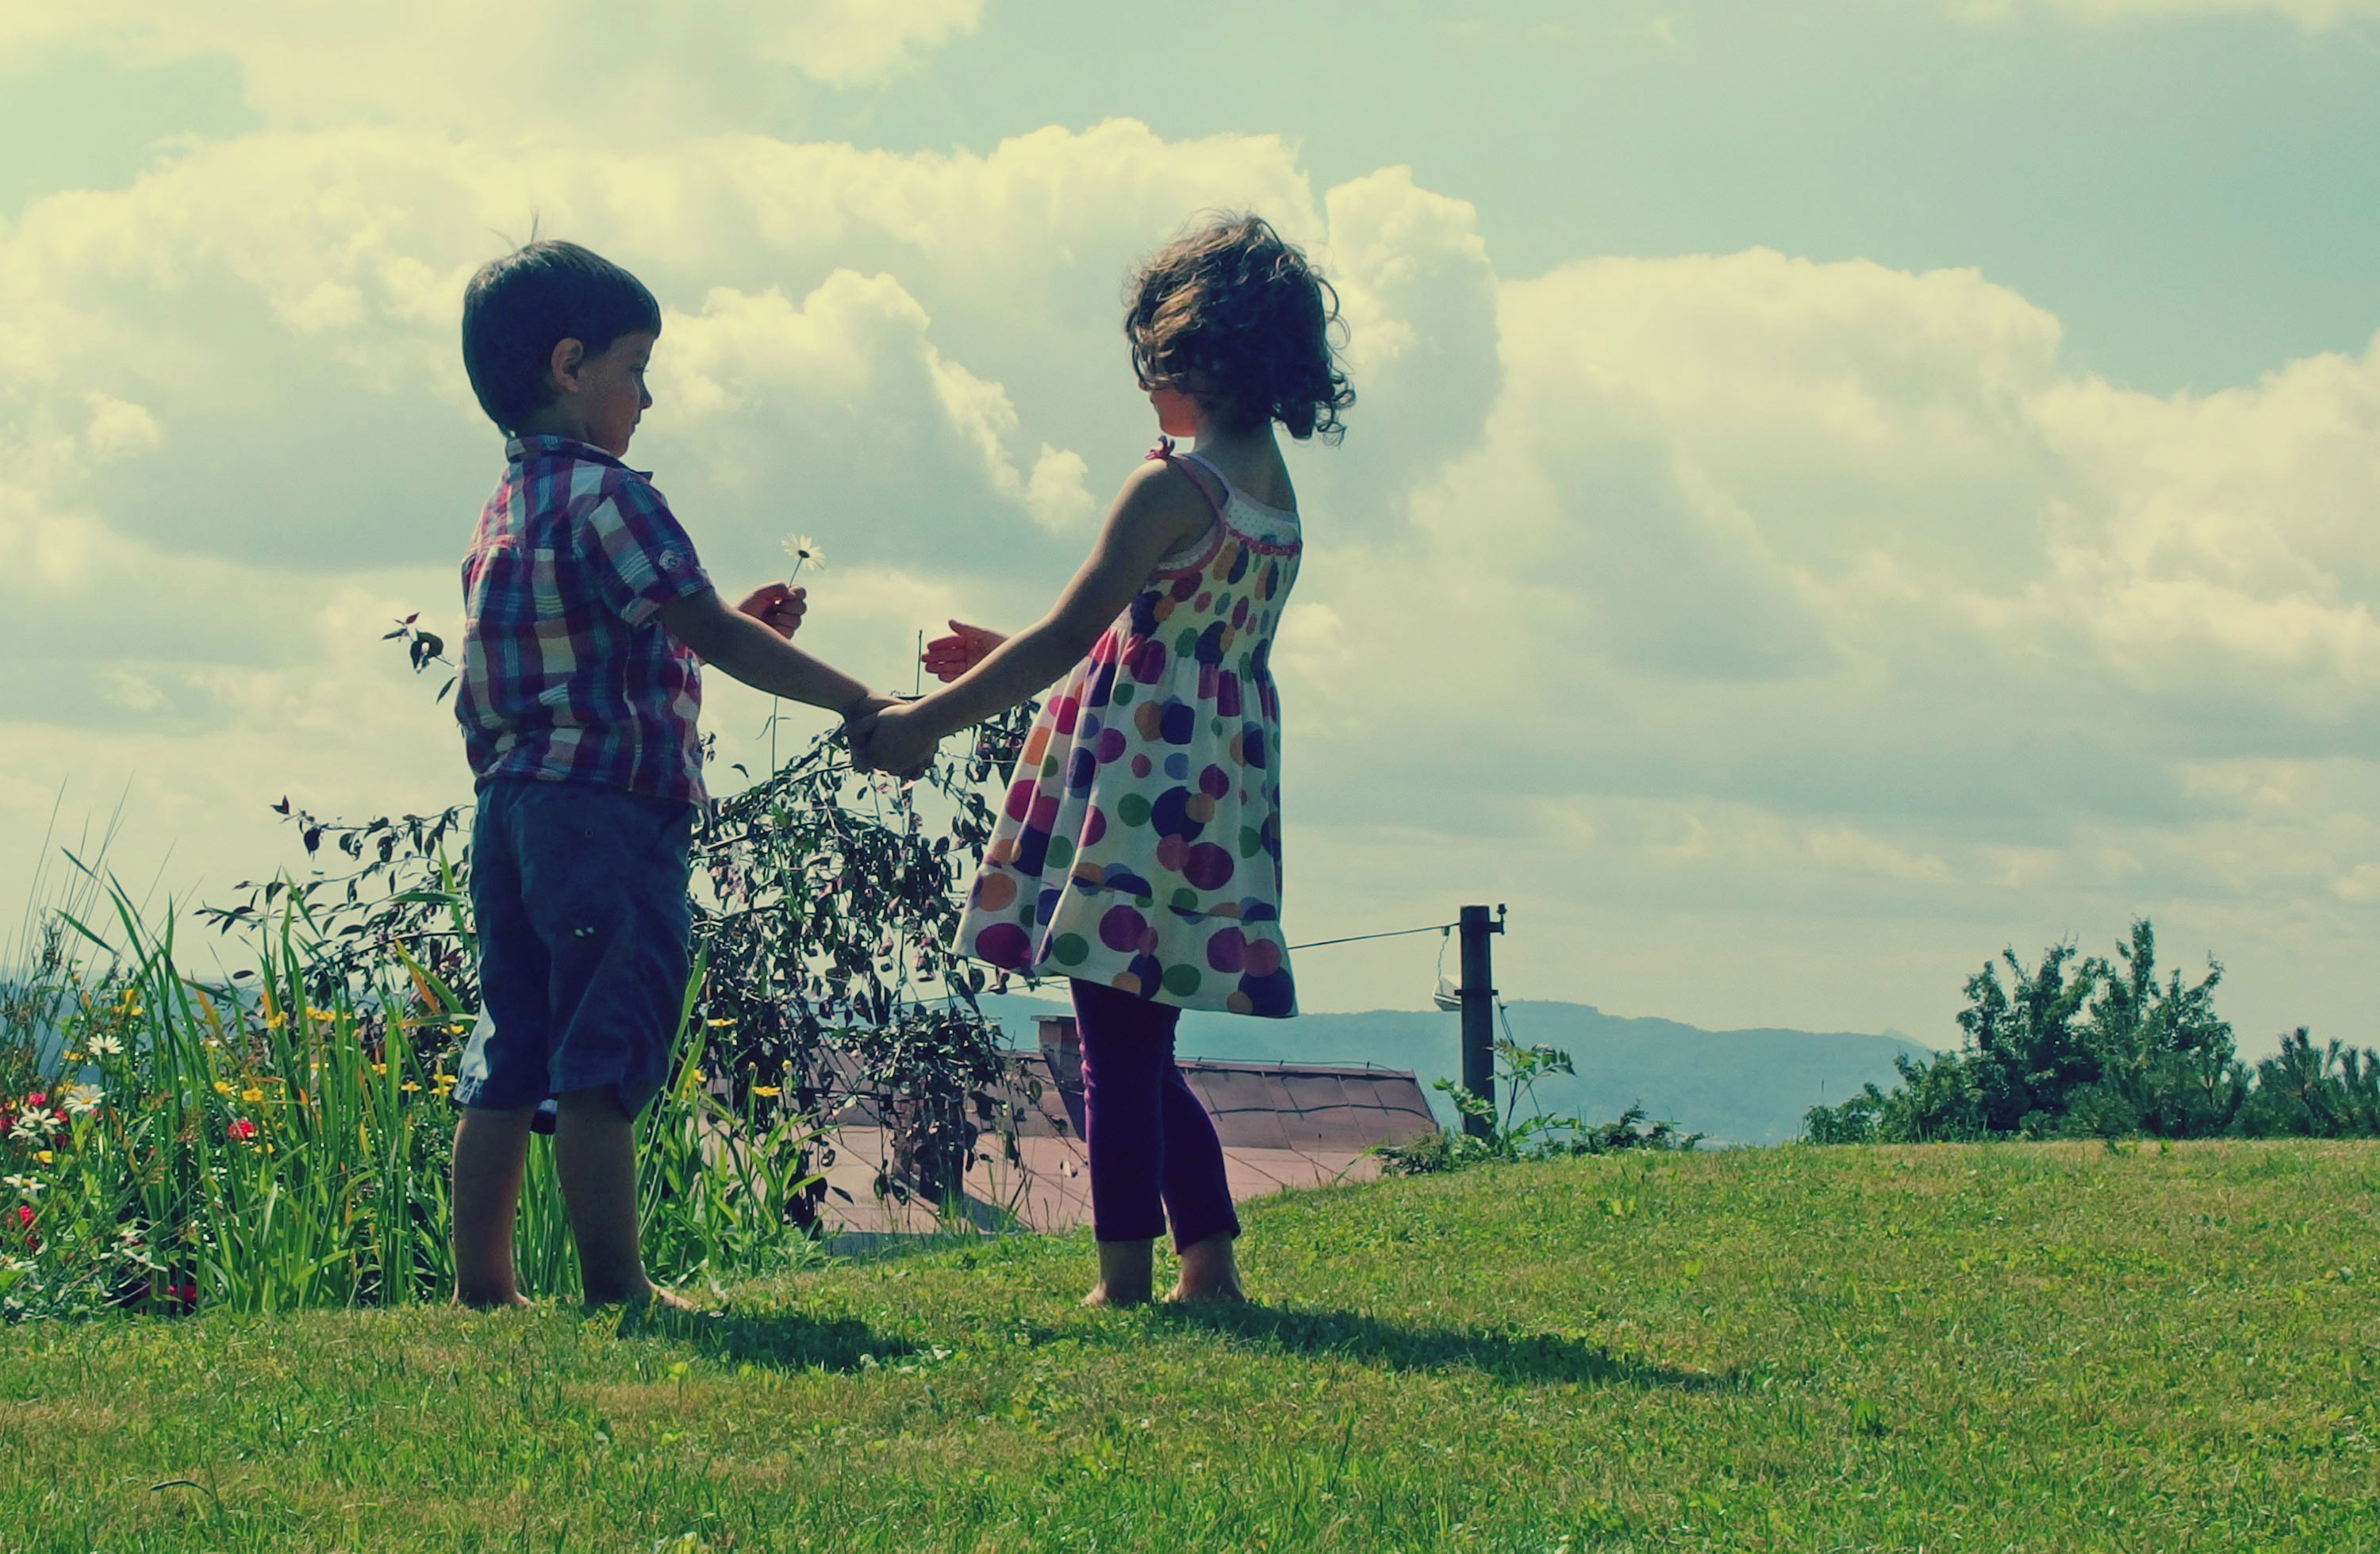 Little boy and girl standing in a field